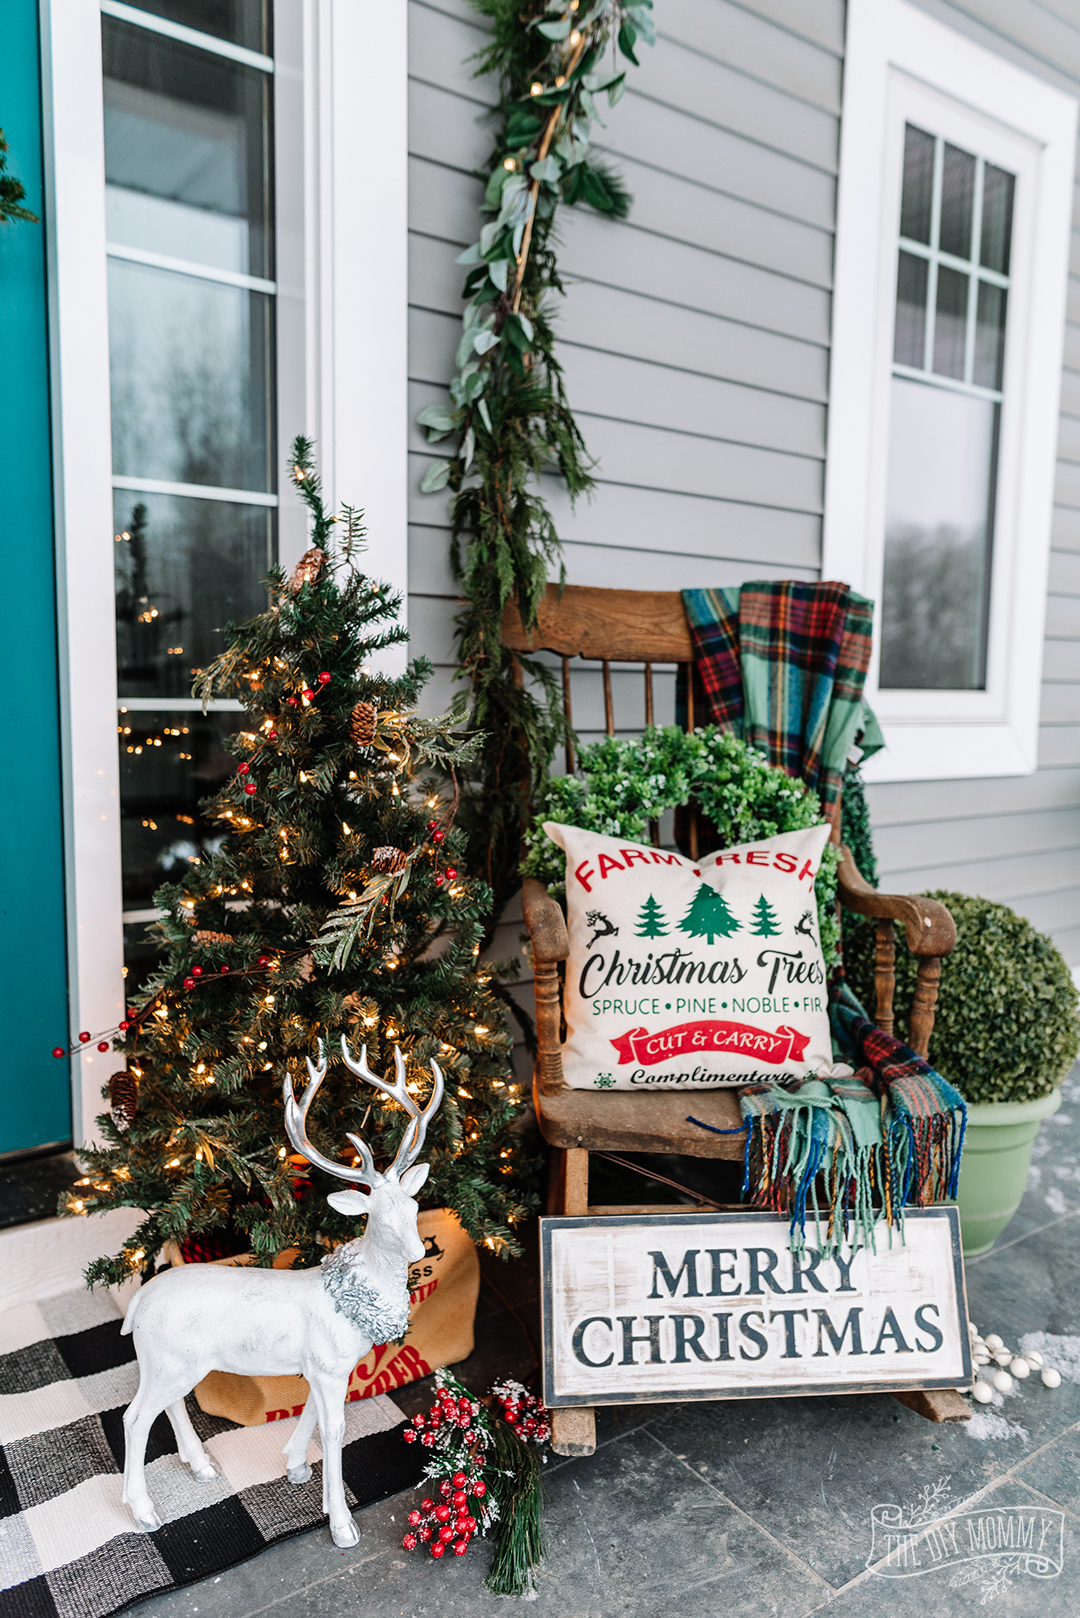 Christmas front porch in traditional farmhouse decor in reds, greens and teal colors